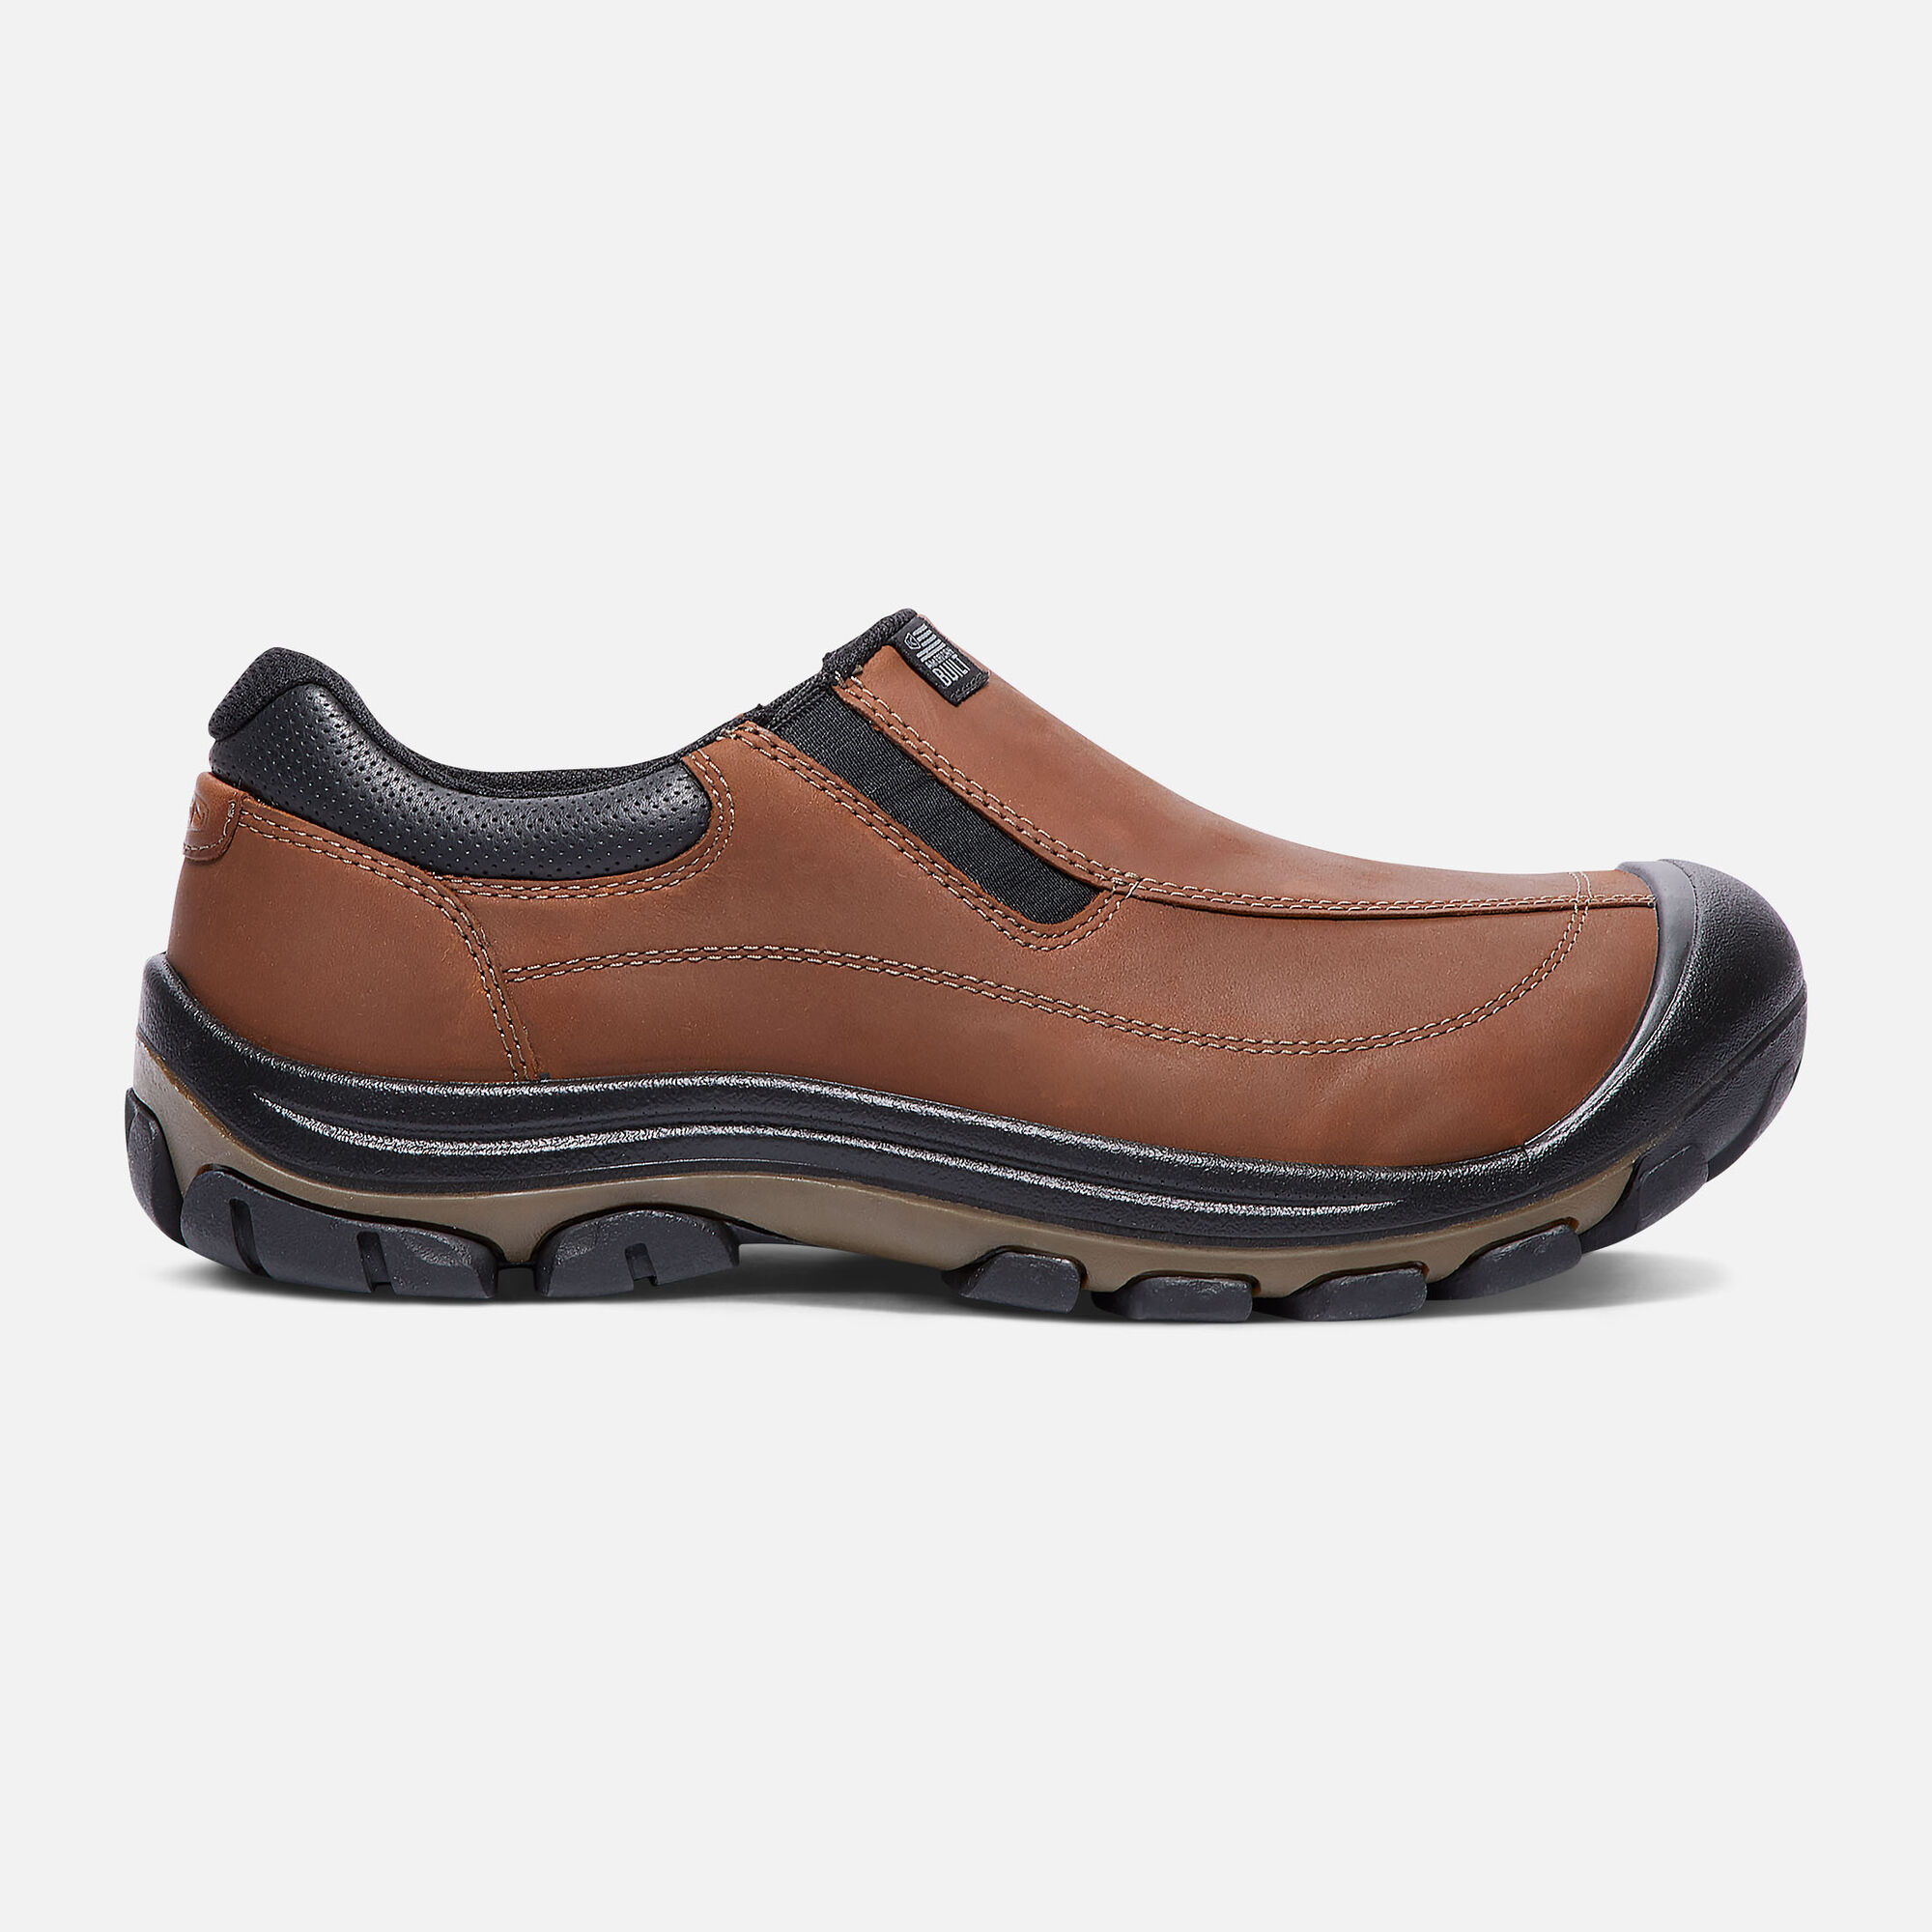 view shoes pps p s resistant small in footwear w most women slip comforter pdp keen oxford black ptc comfortable